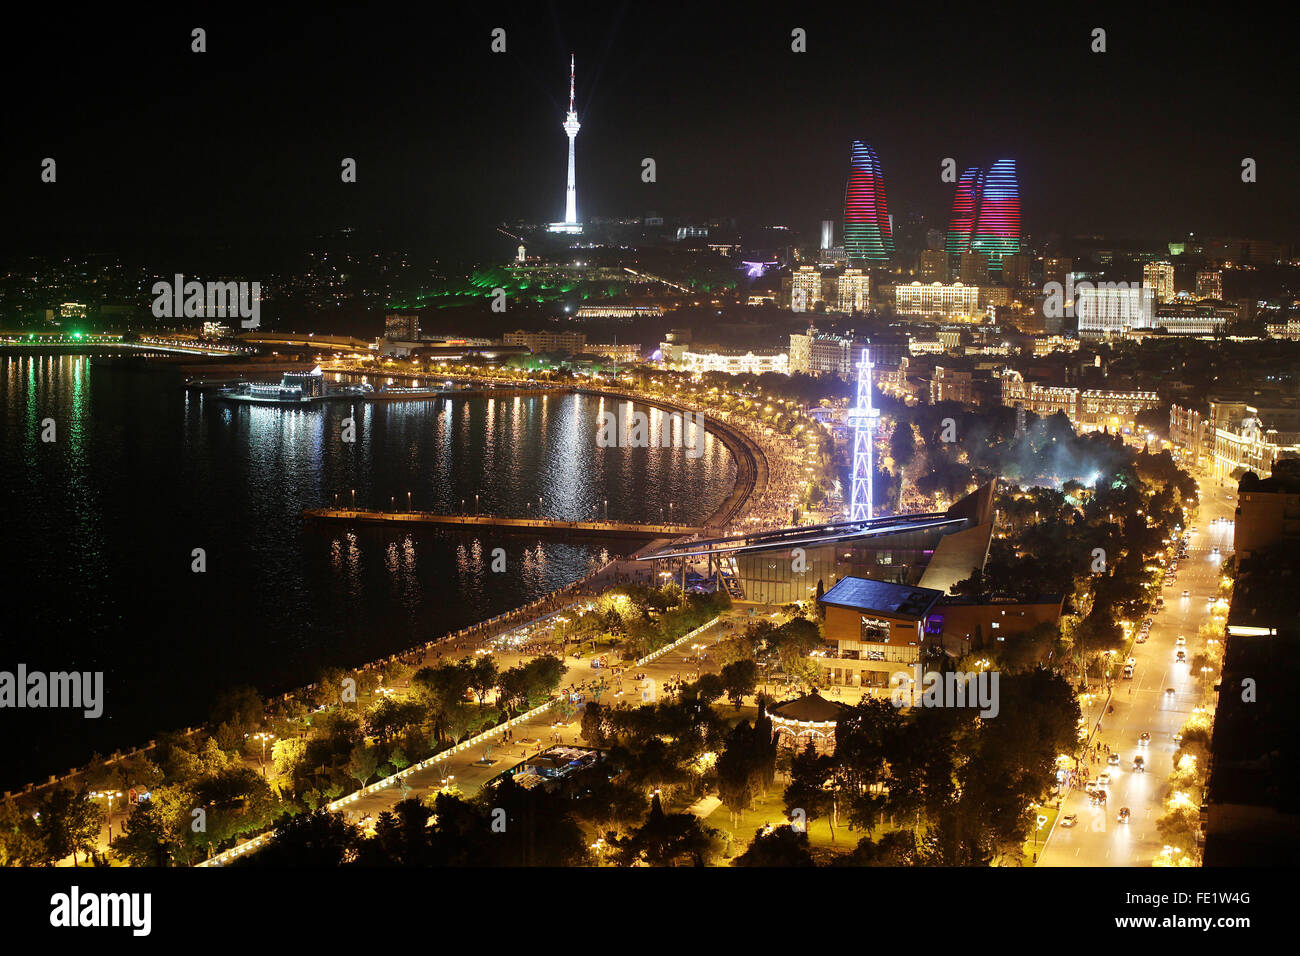 The city of Baku, Azerbaijan Stock Photo